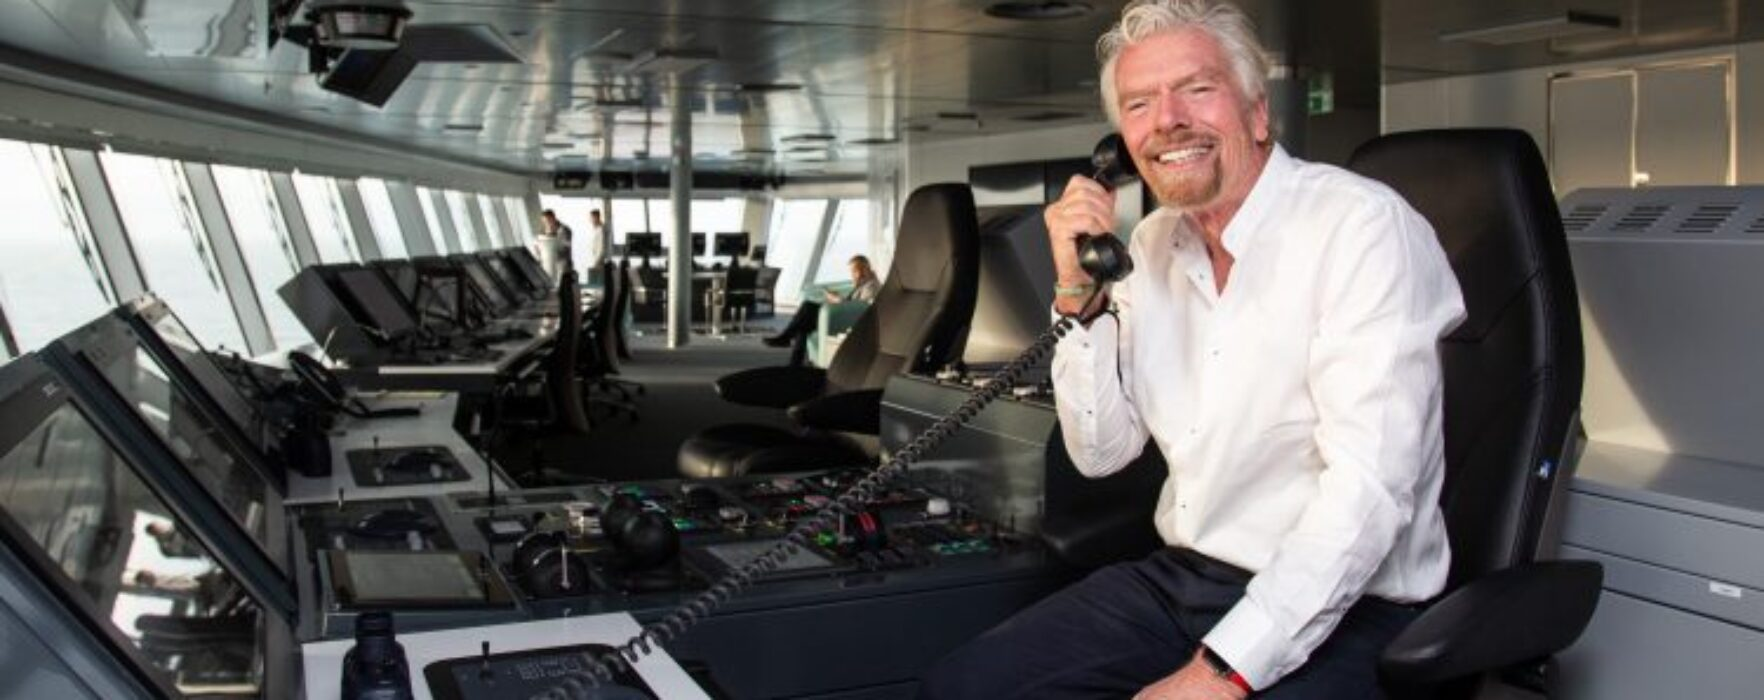 Take a look inside Virgin's first cruise ship 'Scarlet Lady'